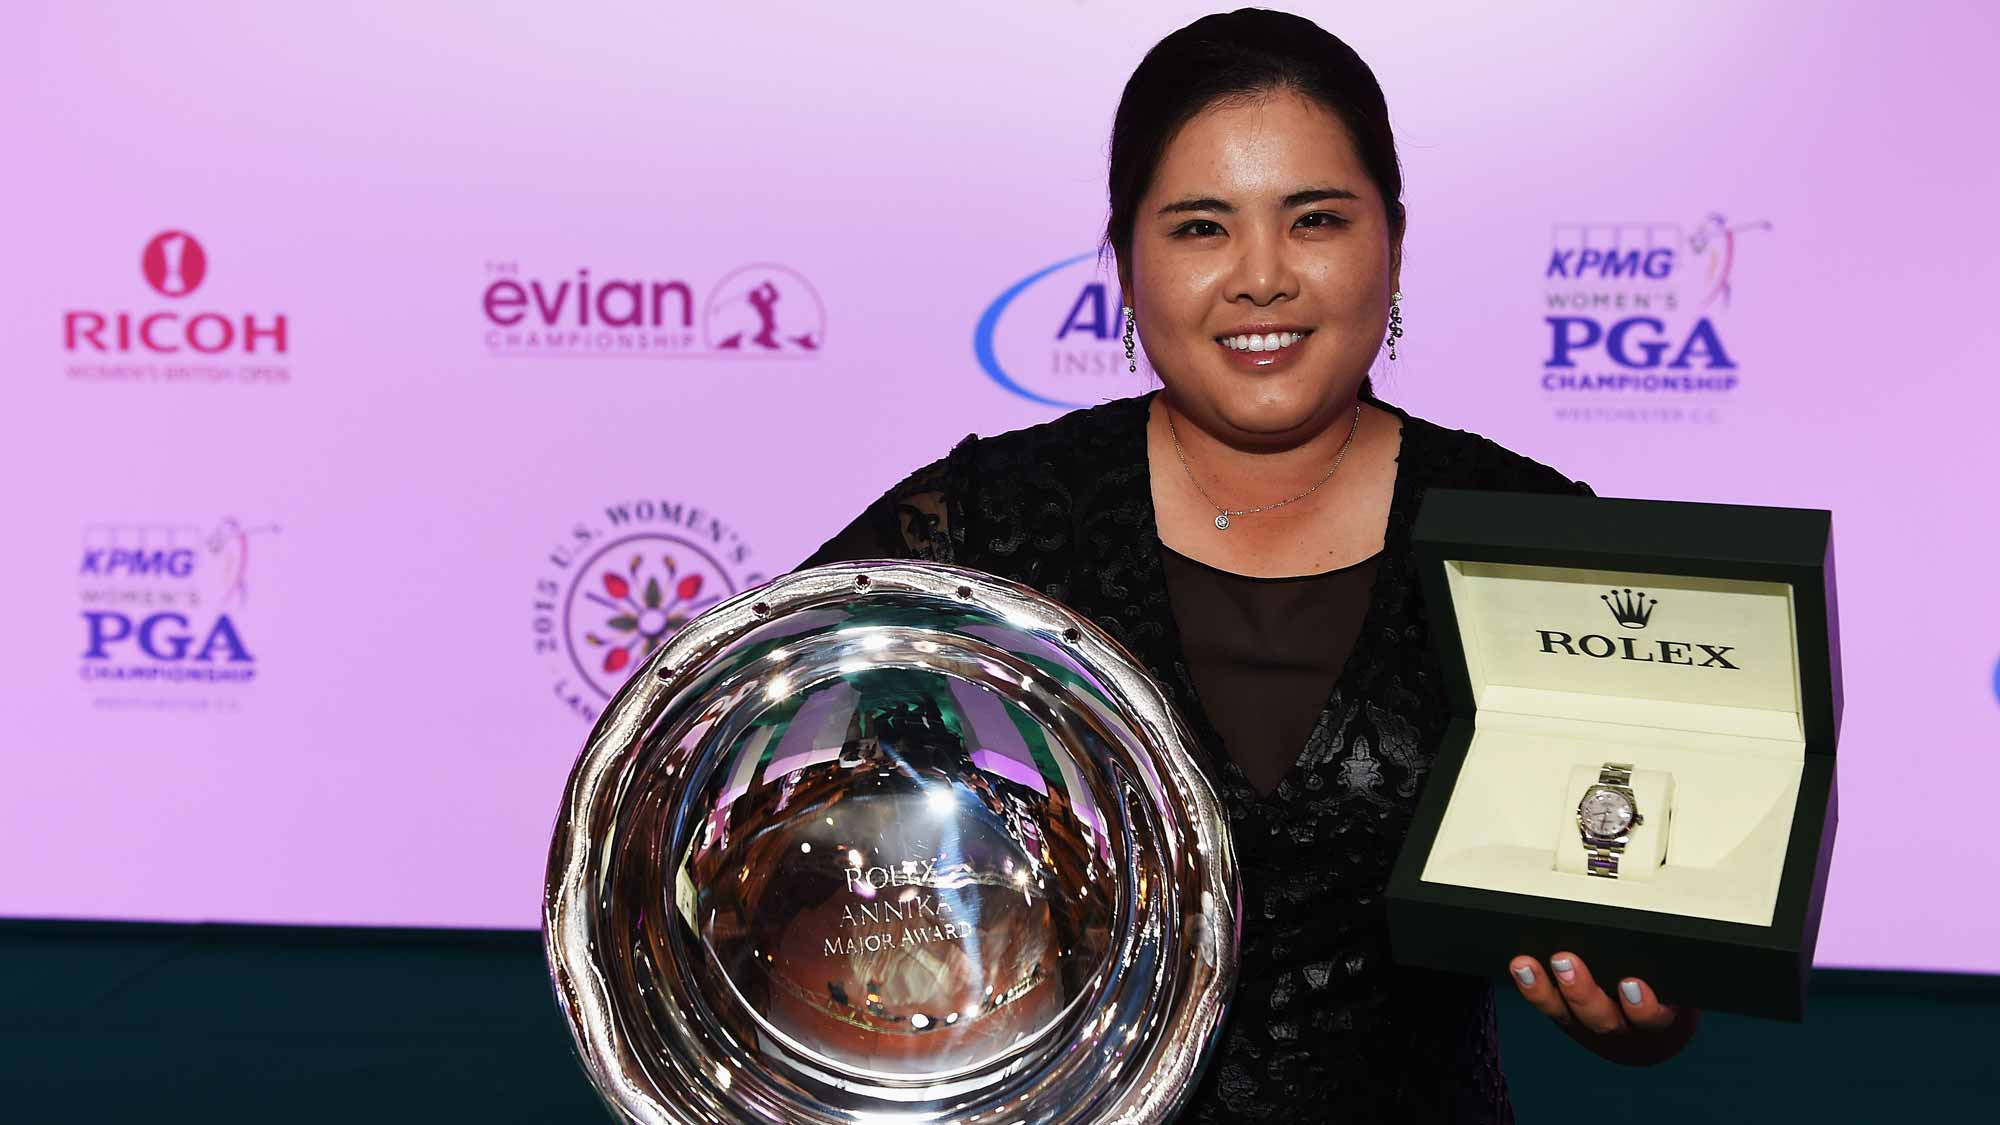 Inbee Park holds the Rolex Annika Major Award at the Rolex Award ceremony after the third round of the Evian Championship